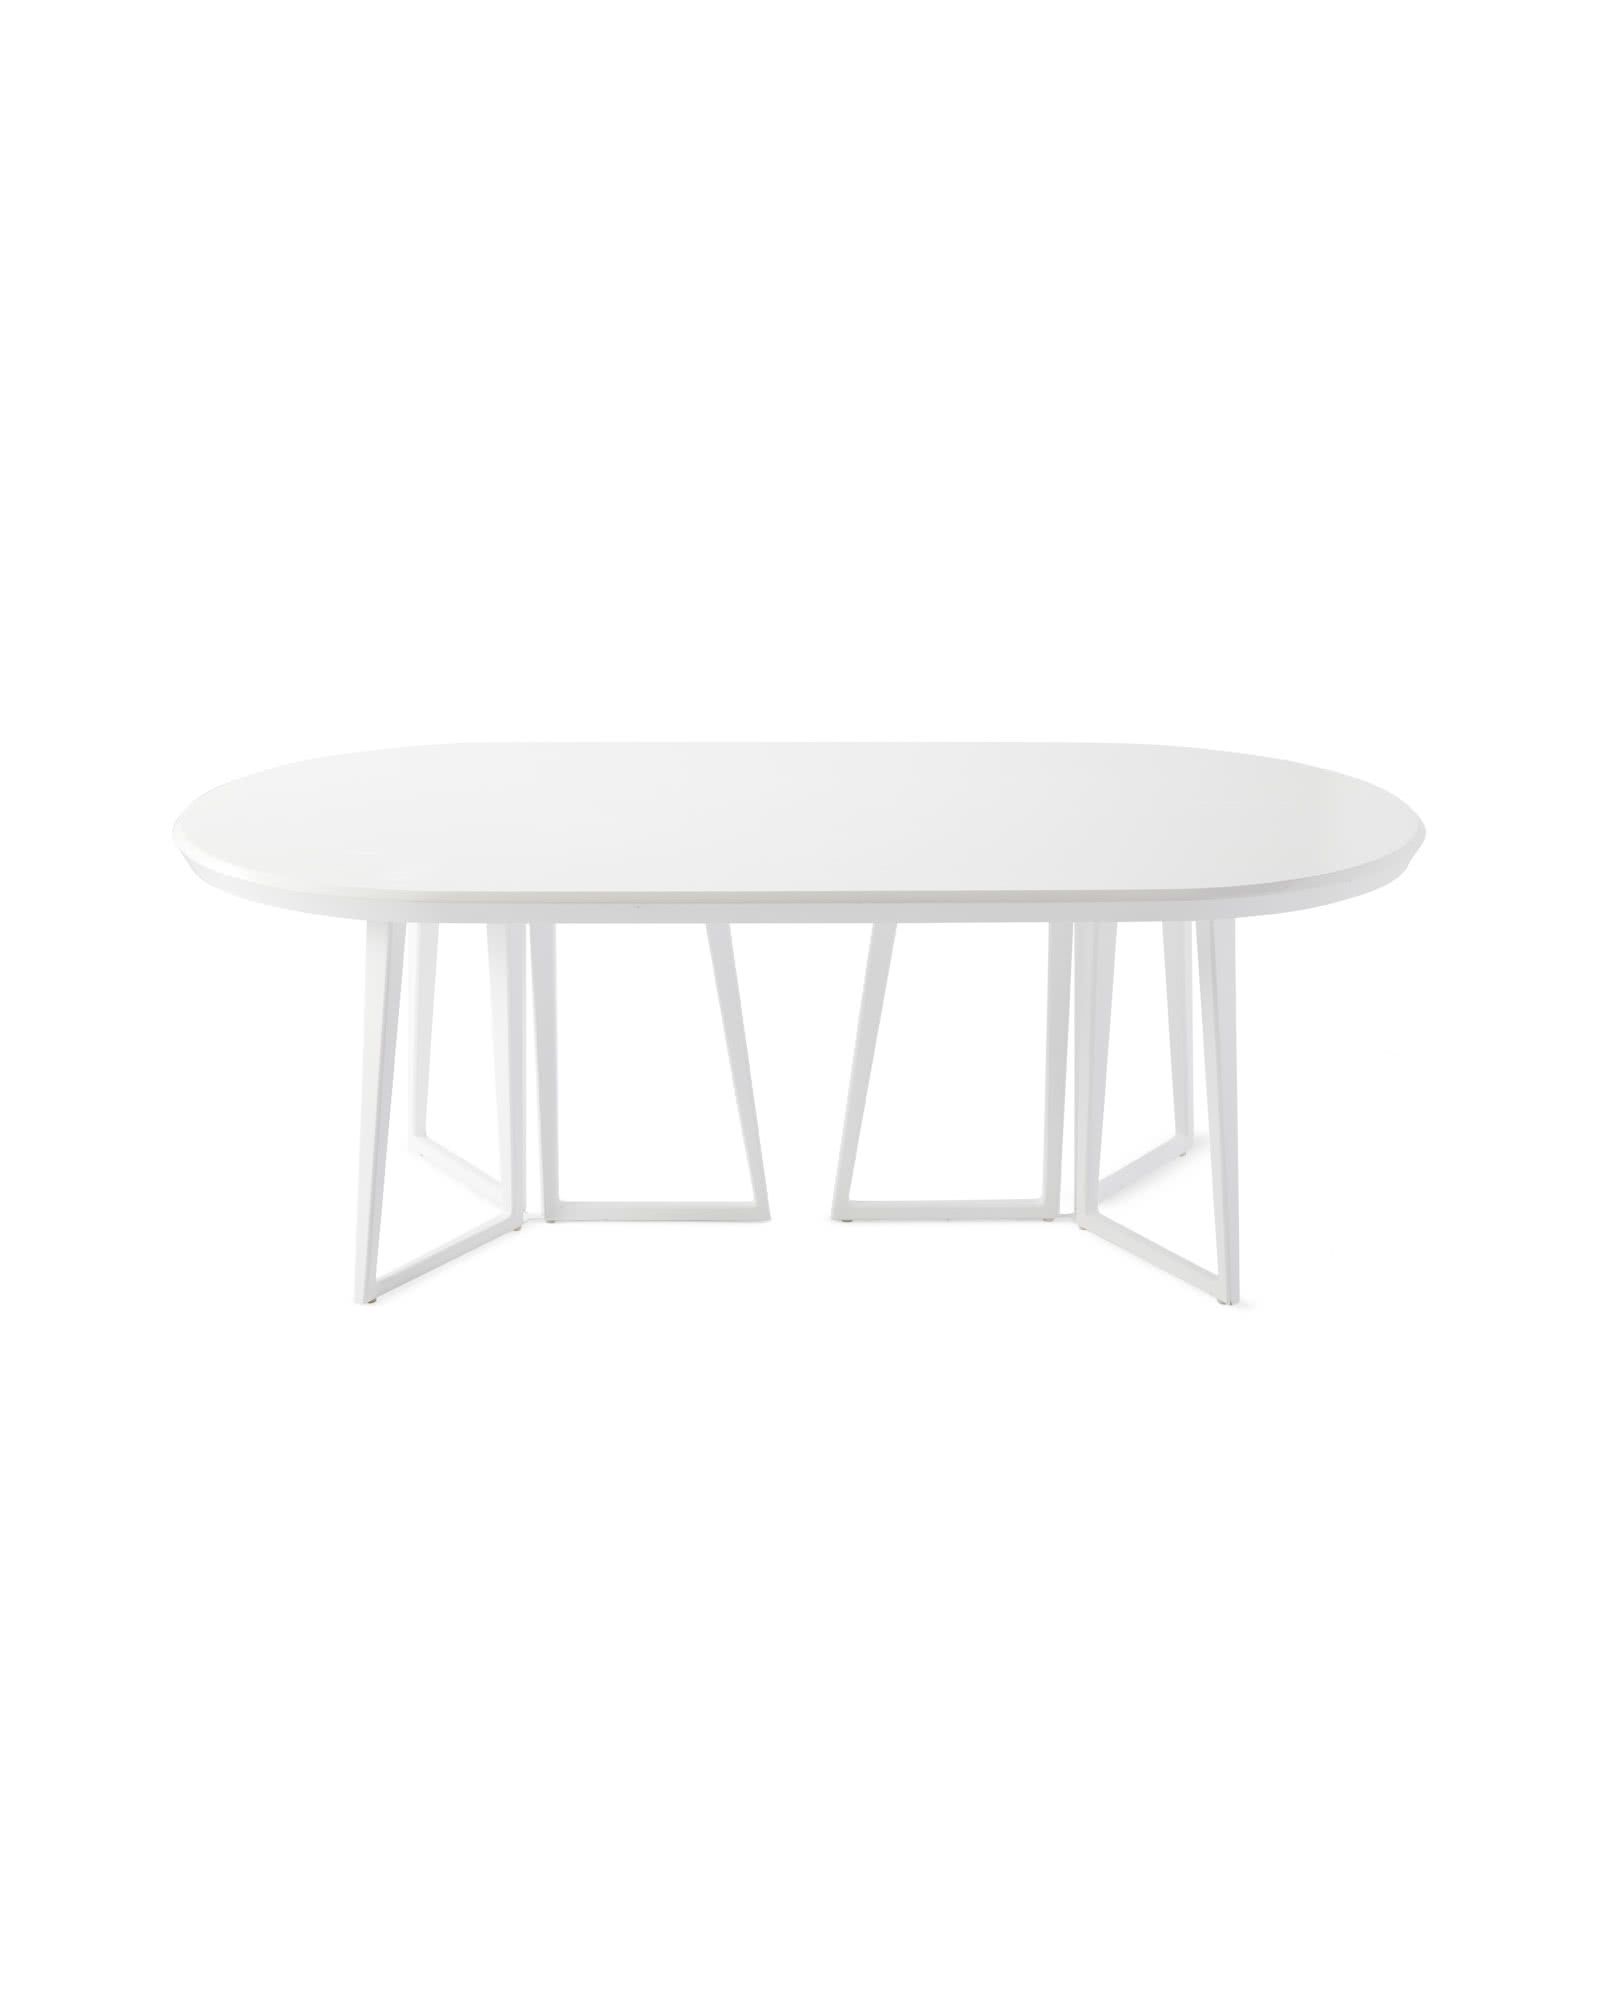 Downing Oval Dining Table, White